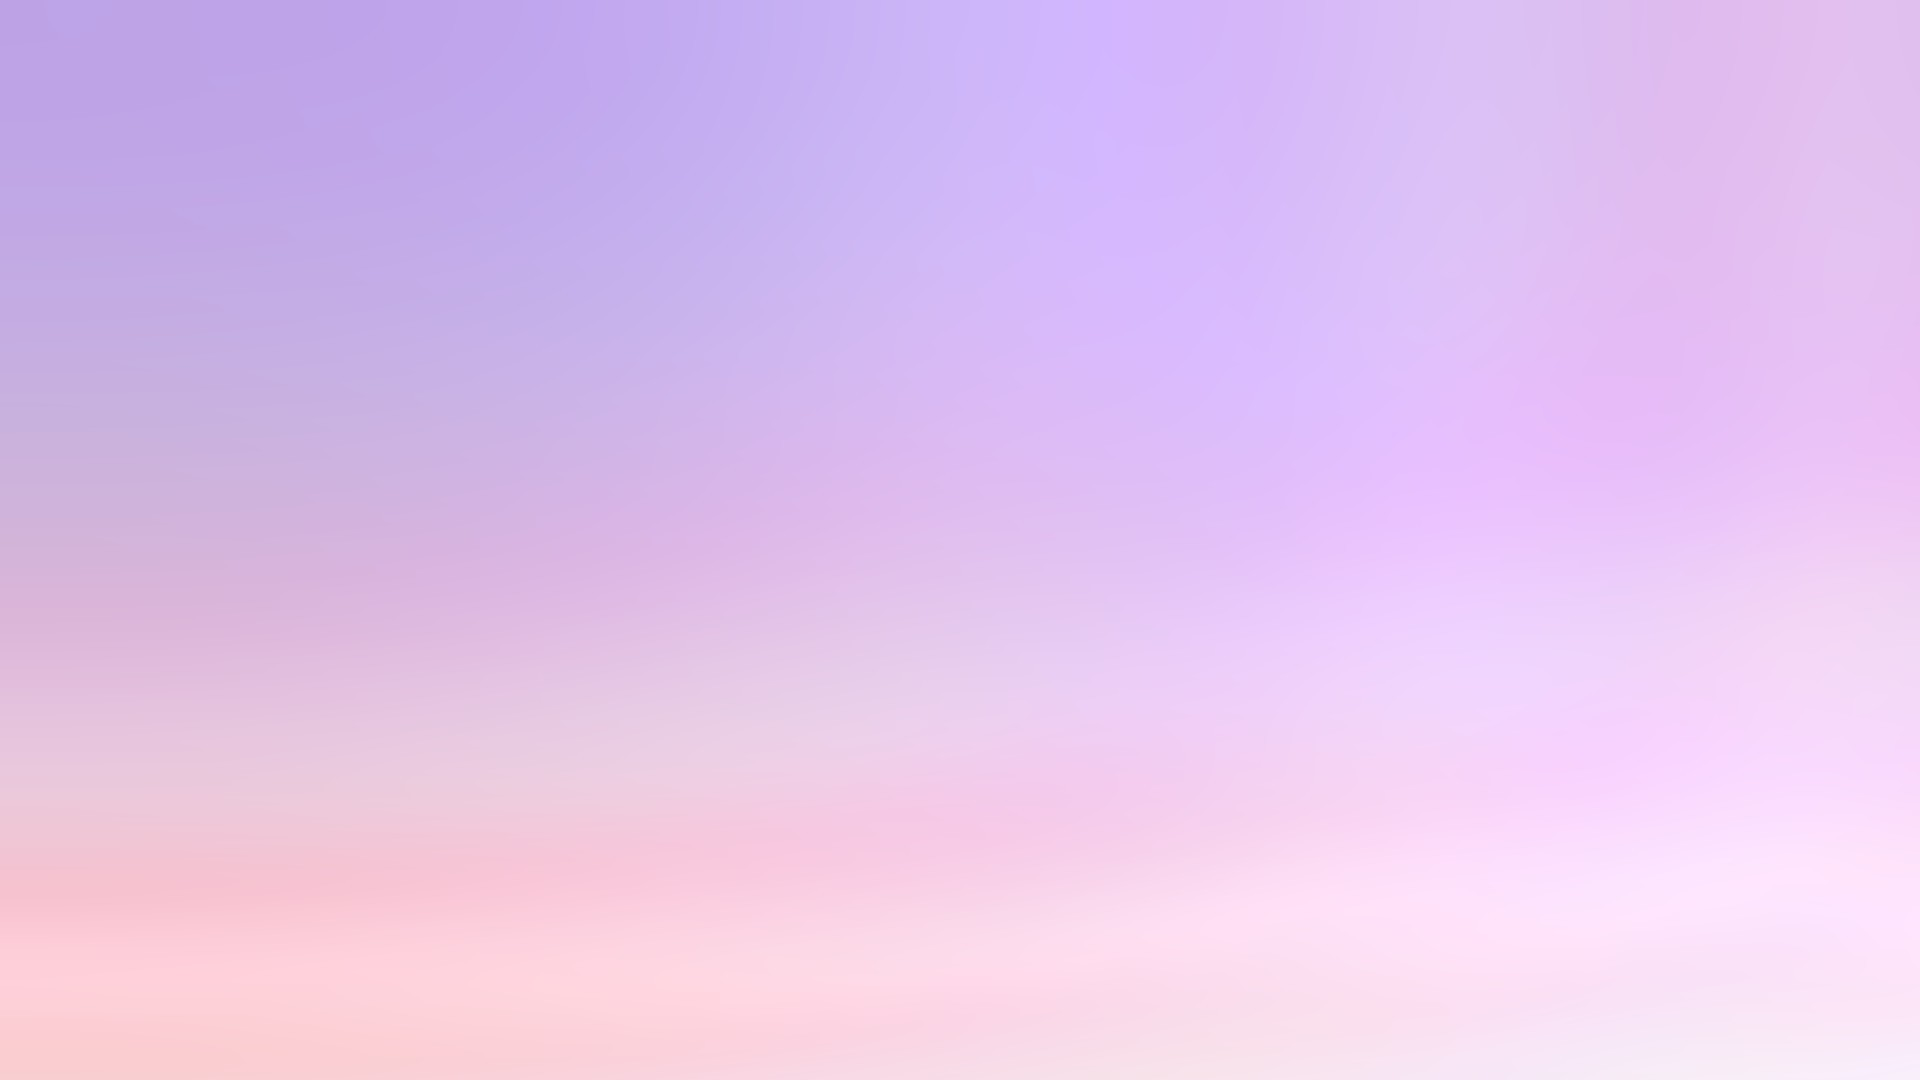 pink and purple backgrounds 183��